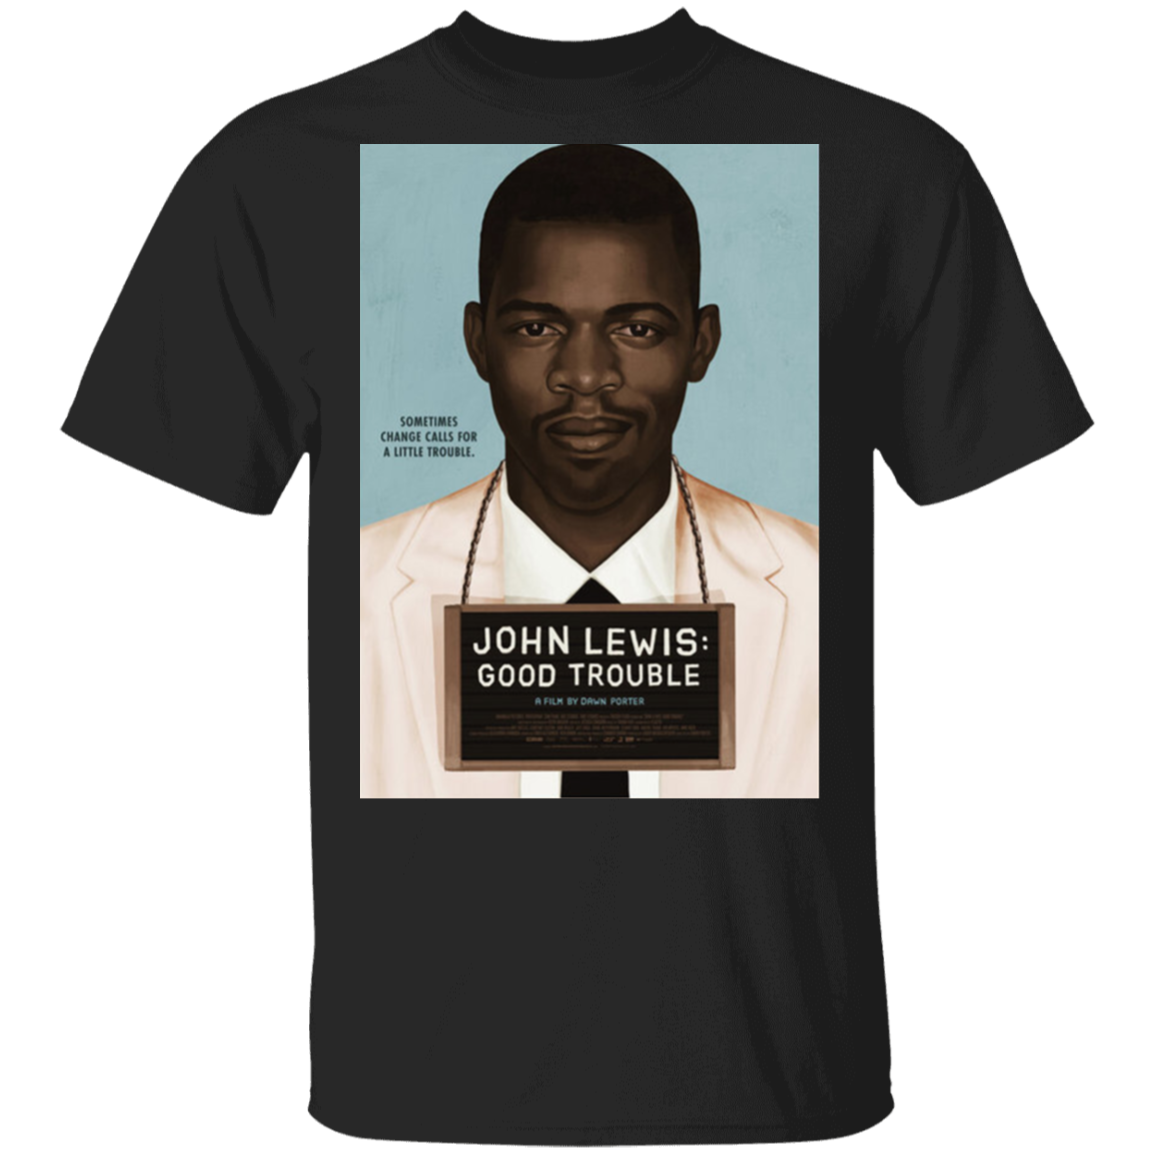 Good Trouble John Lewis T-Shirt Sometime Change Calls For A Little Trouble Shirt